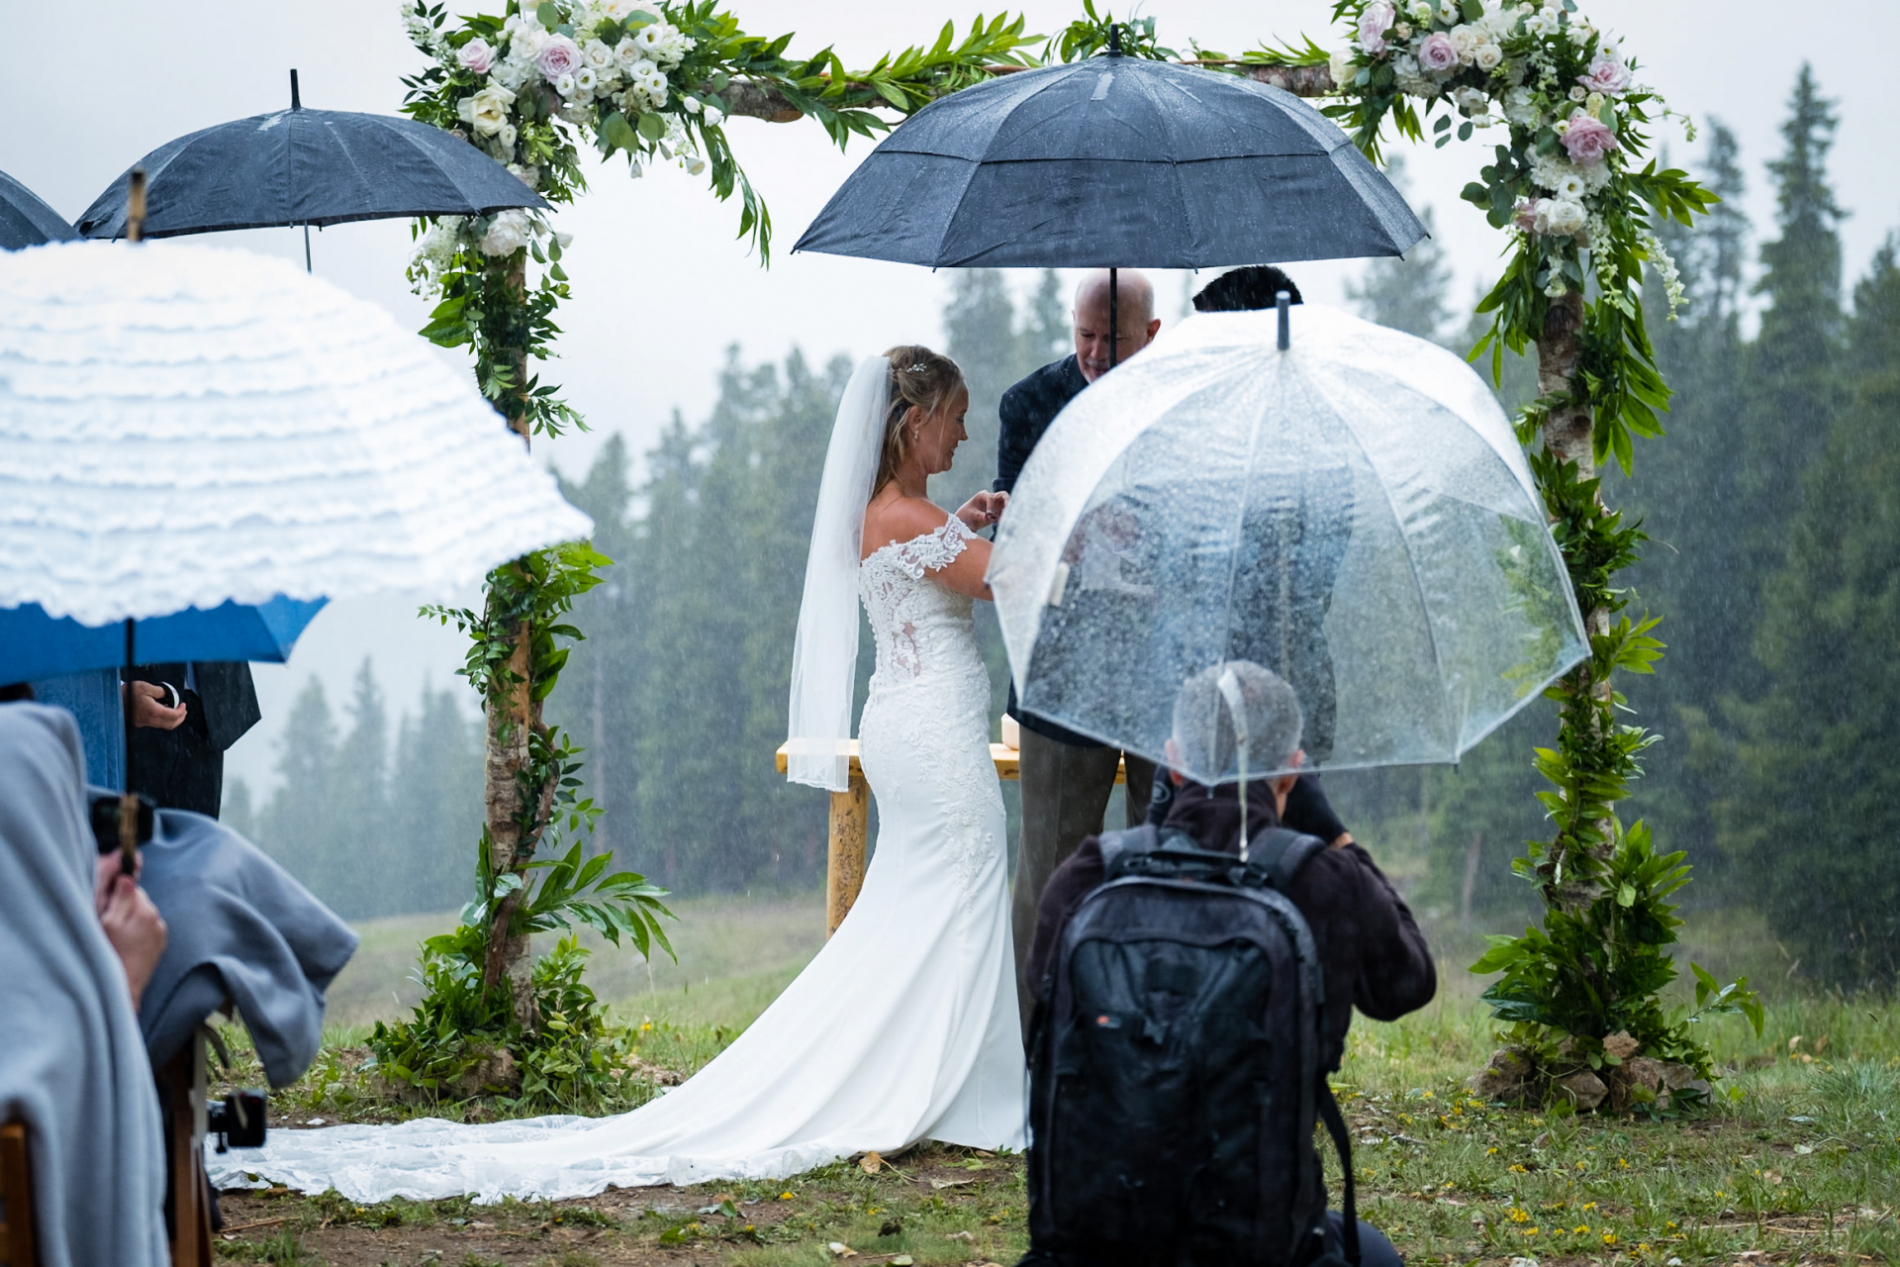 Colorado Wedding photographer Mark Creery working at a ceremony in the rain in Fort Collins